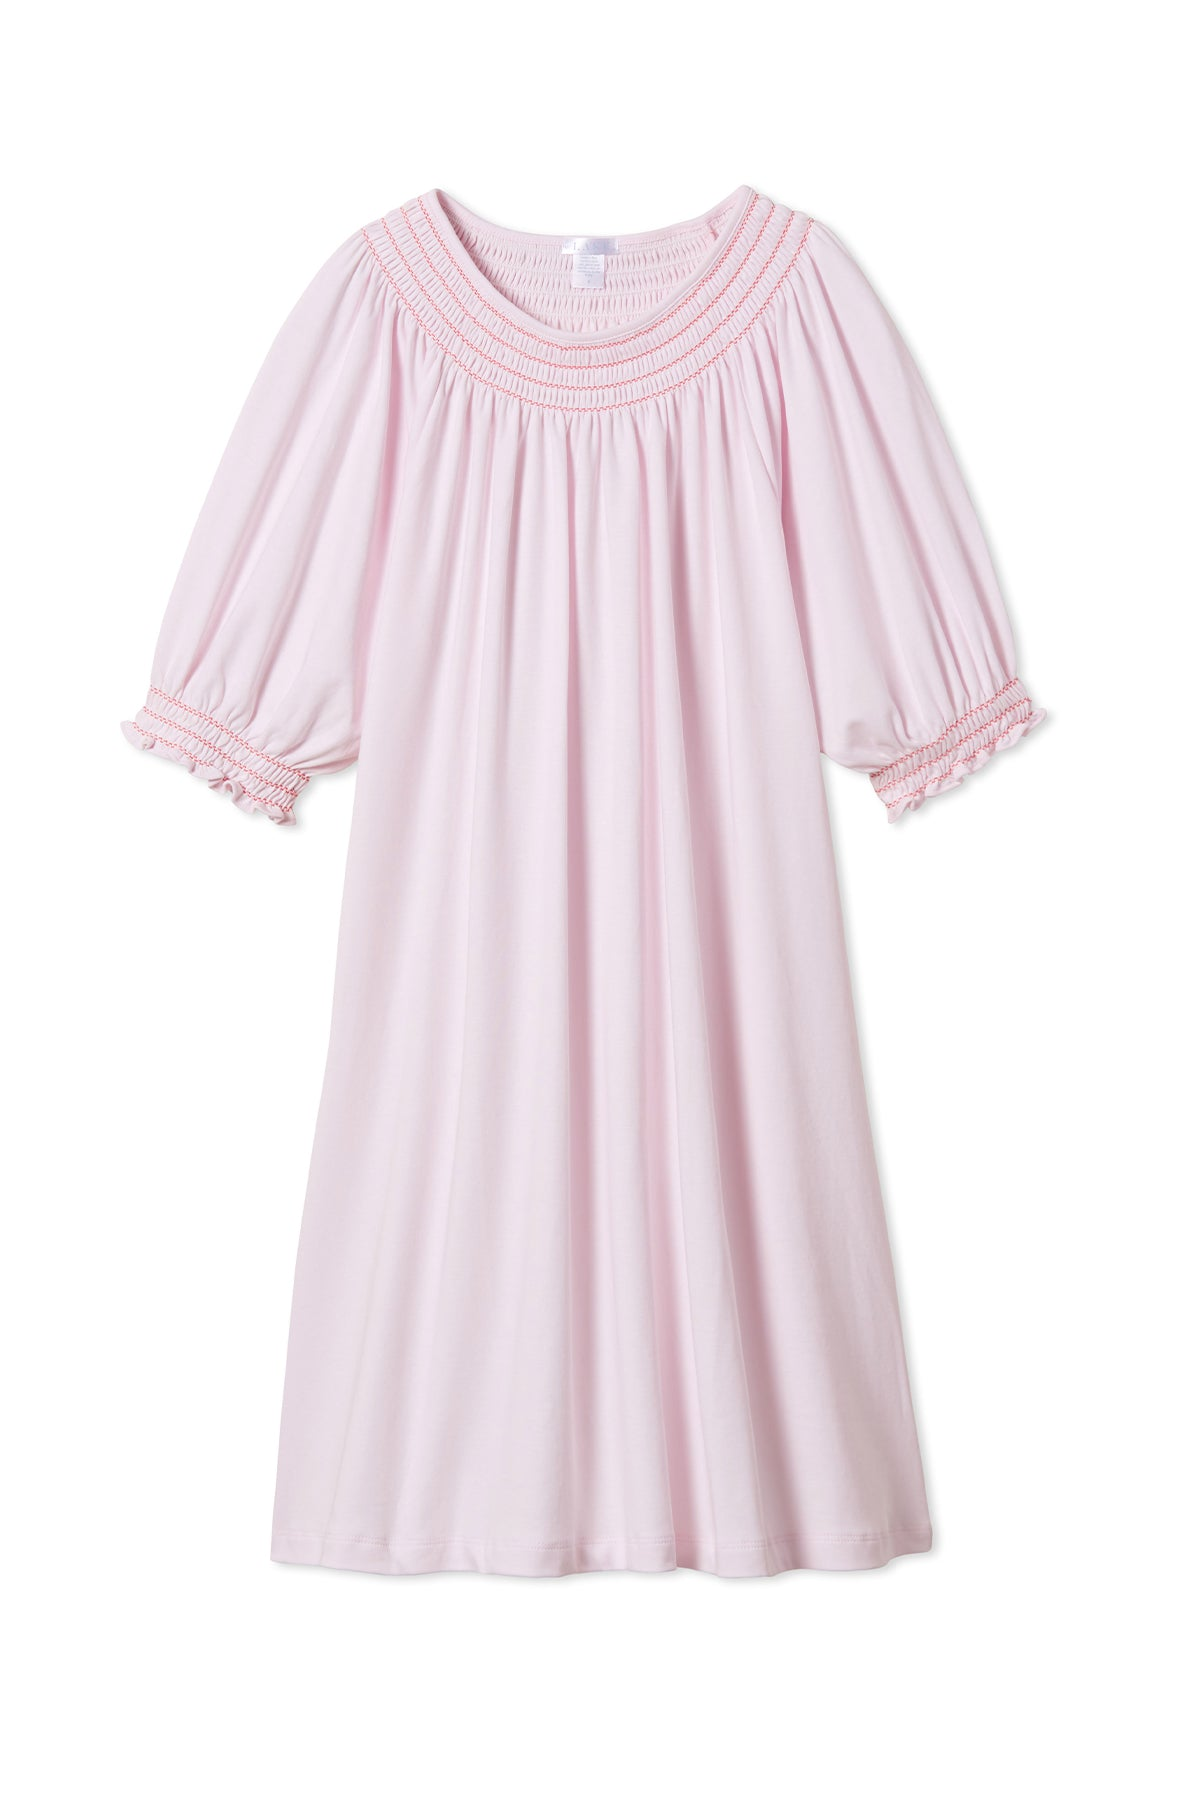 Pima Smocked Nightgown in Azalea